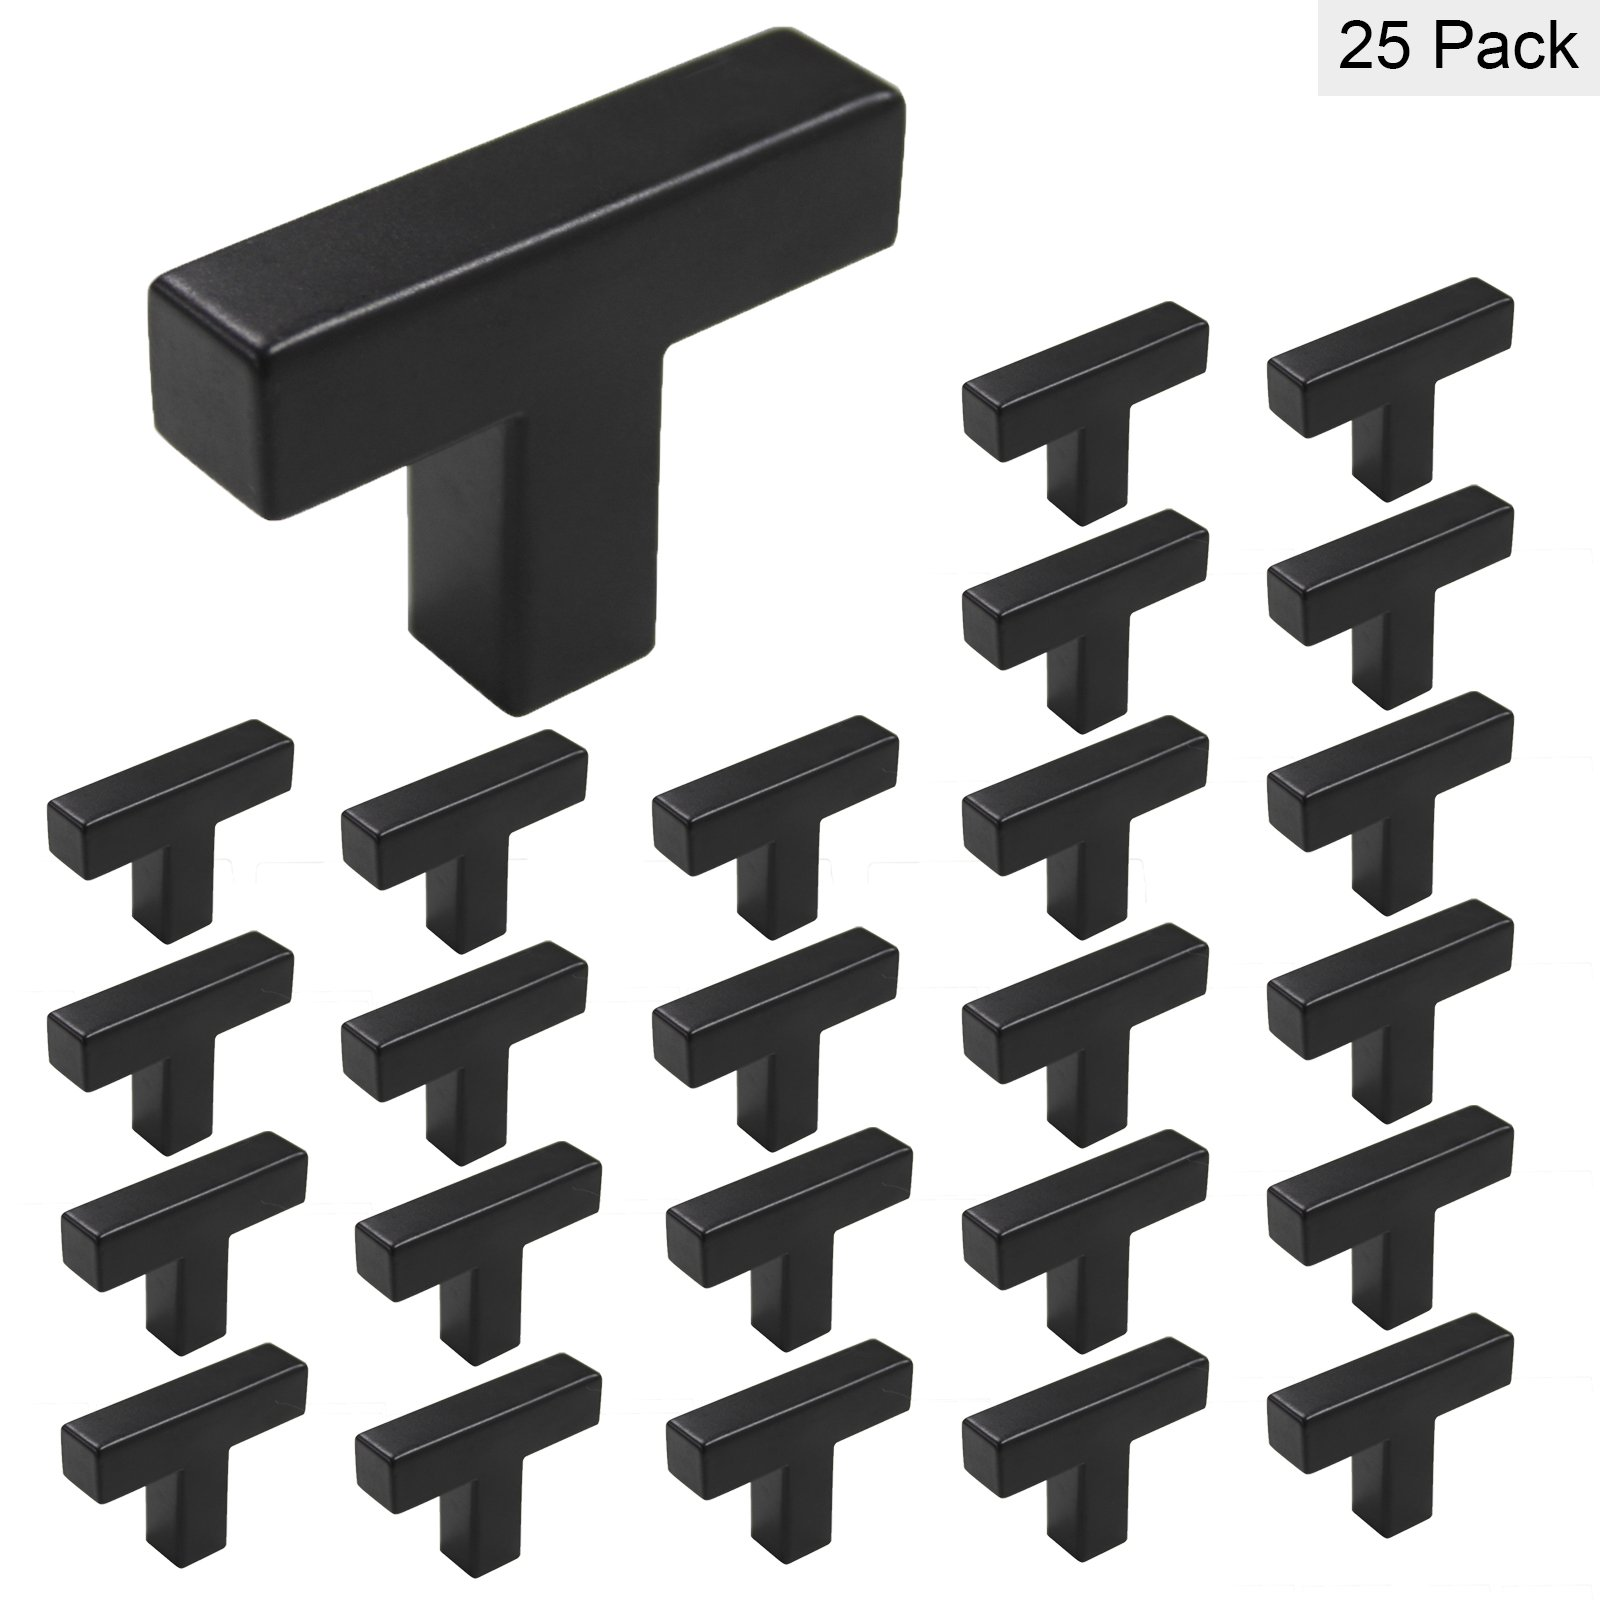 Modern Drawer Pulls Flat Black Stainless Steel Square Single Hole T Knob - Homidy HDJ12 Cabinets Knobs Handles For Kitchen Cupboard Bathroom Storage 25Pack